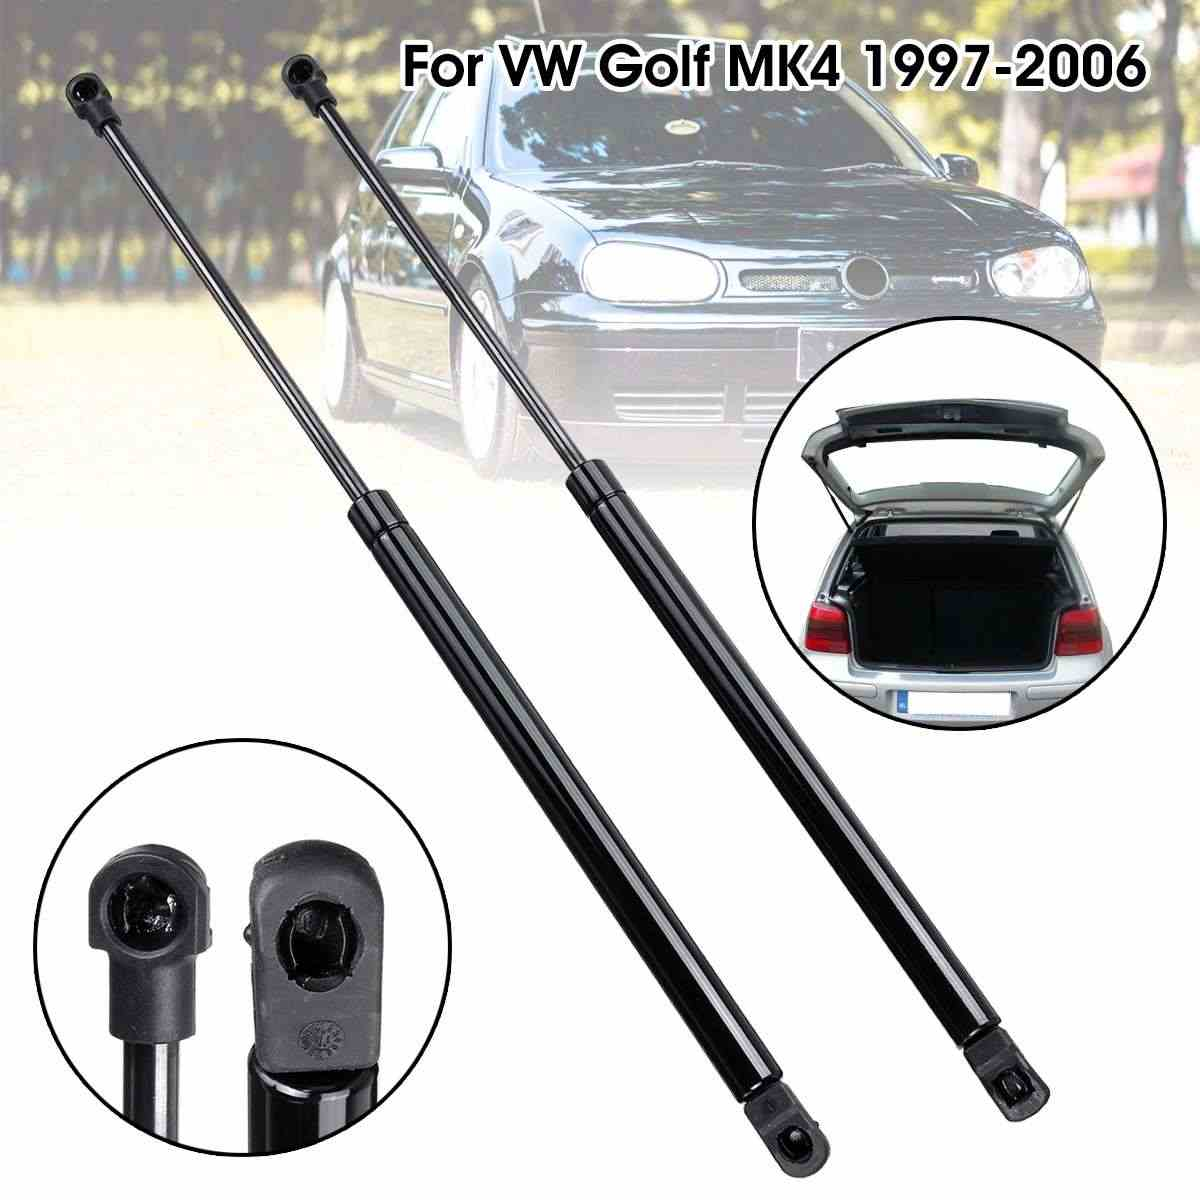 YXA-BGS 2pcs Car-Styling With Gift Tailgate Boot Gas Struts Gas Spring Fit For Skoda Fabia MK2 2007 2008 2009 2010 2011 2012 2013 2014 2015